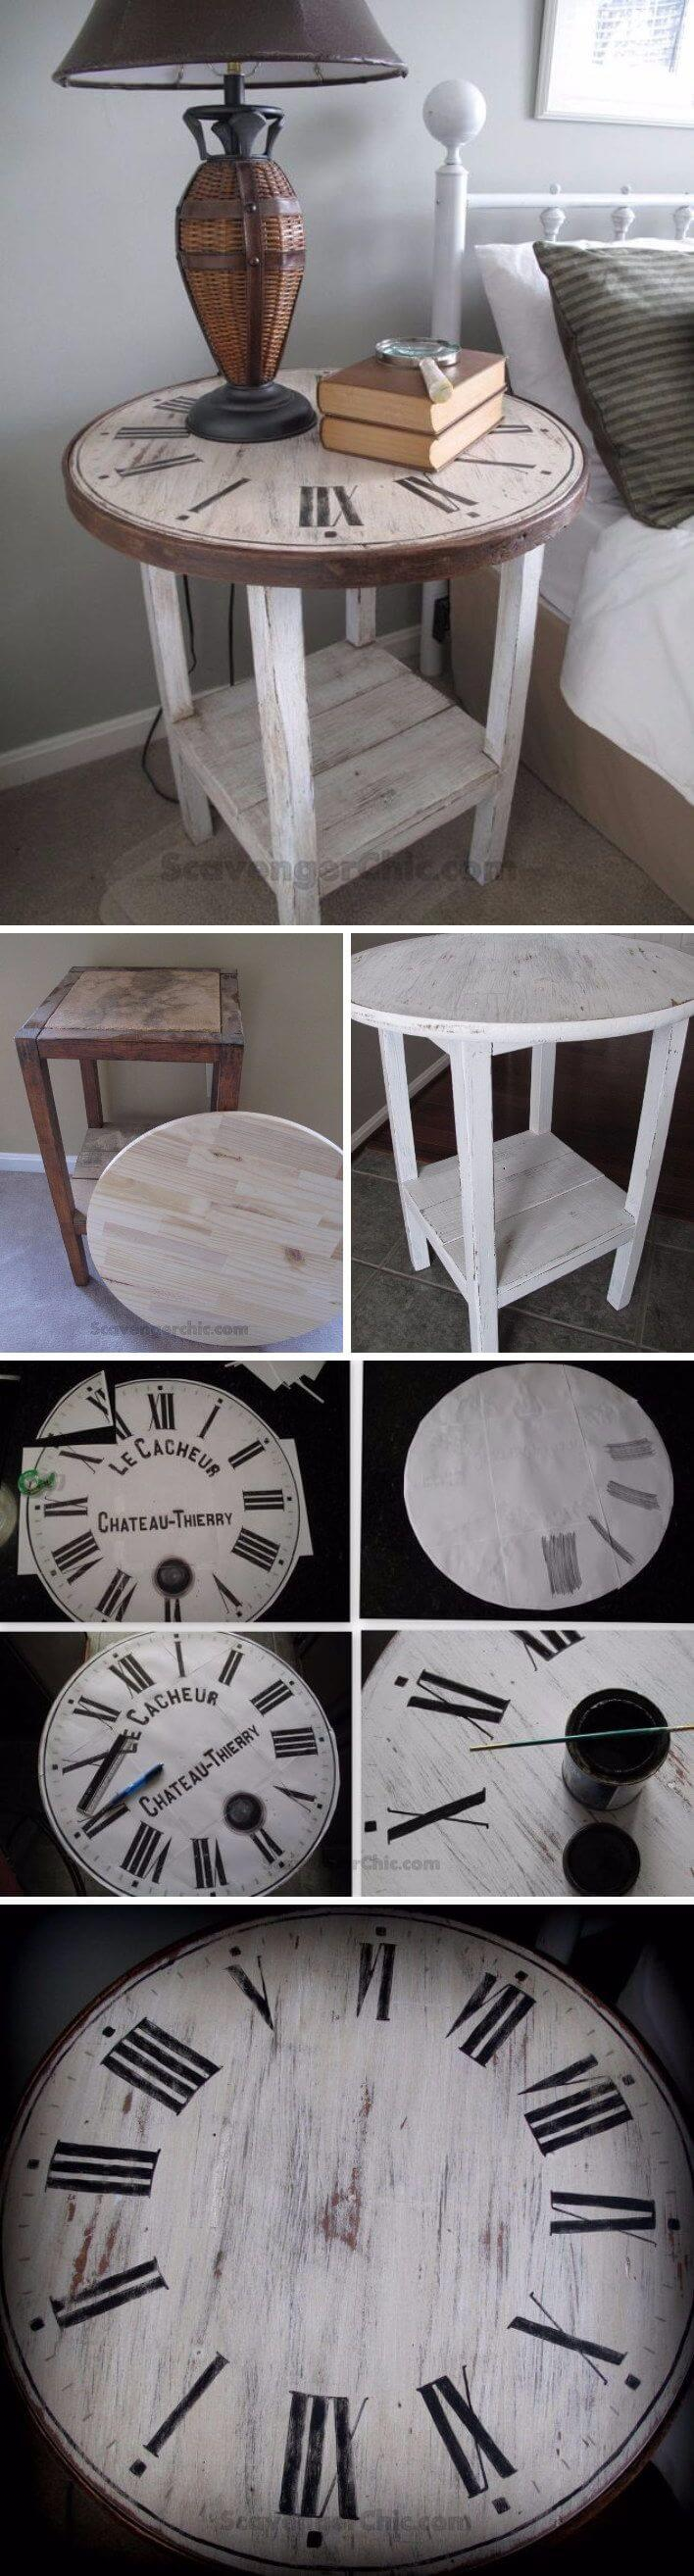 Clock face wooden side table